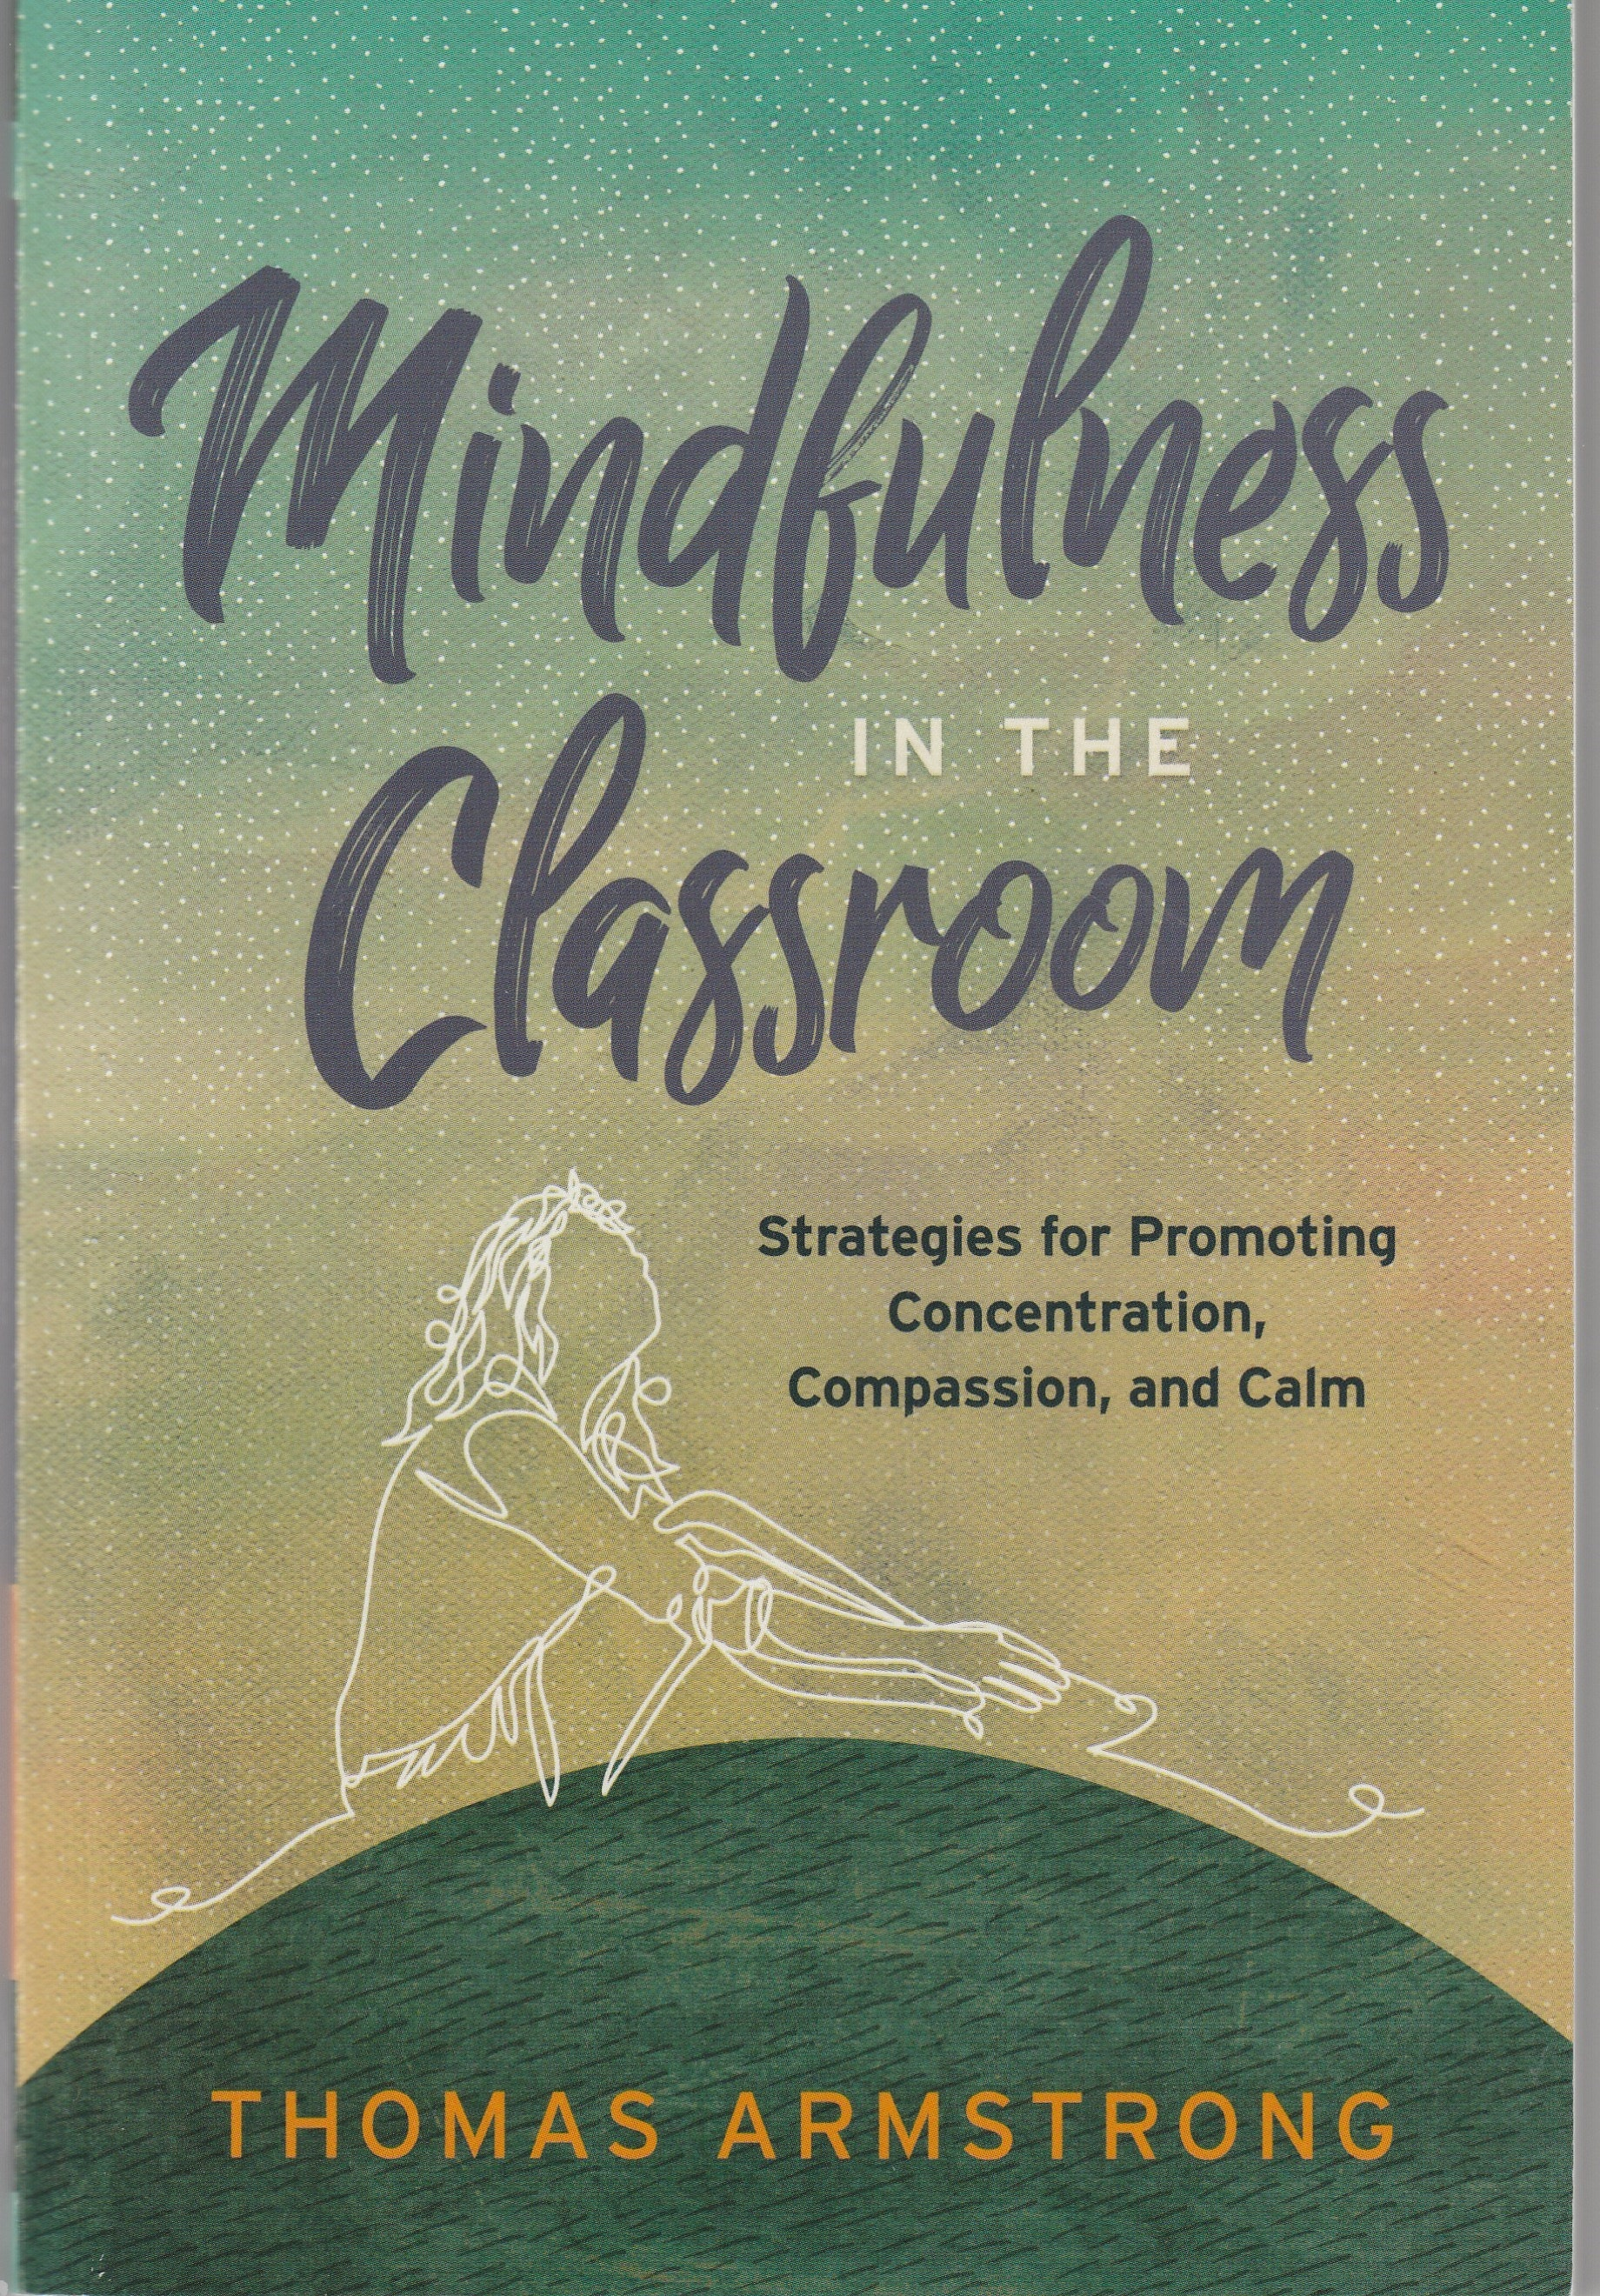 photo of cover of book Mindfulness in the Classroom